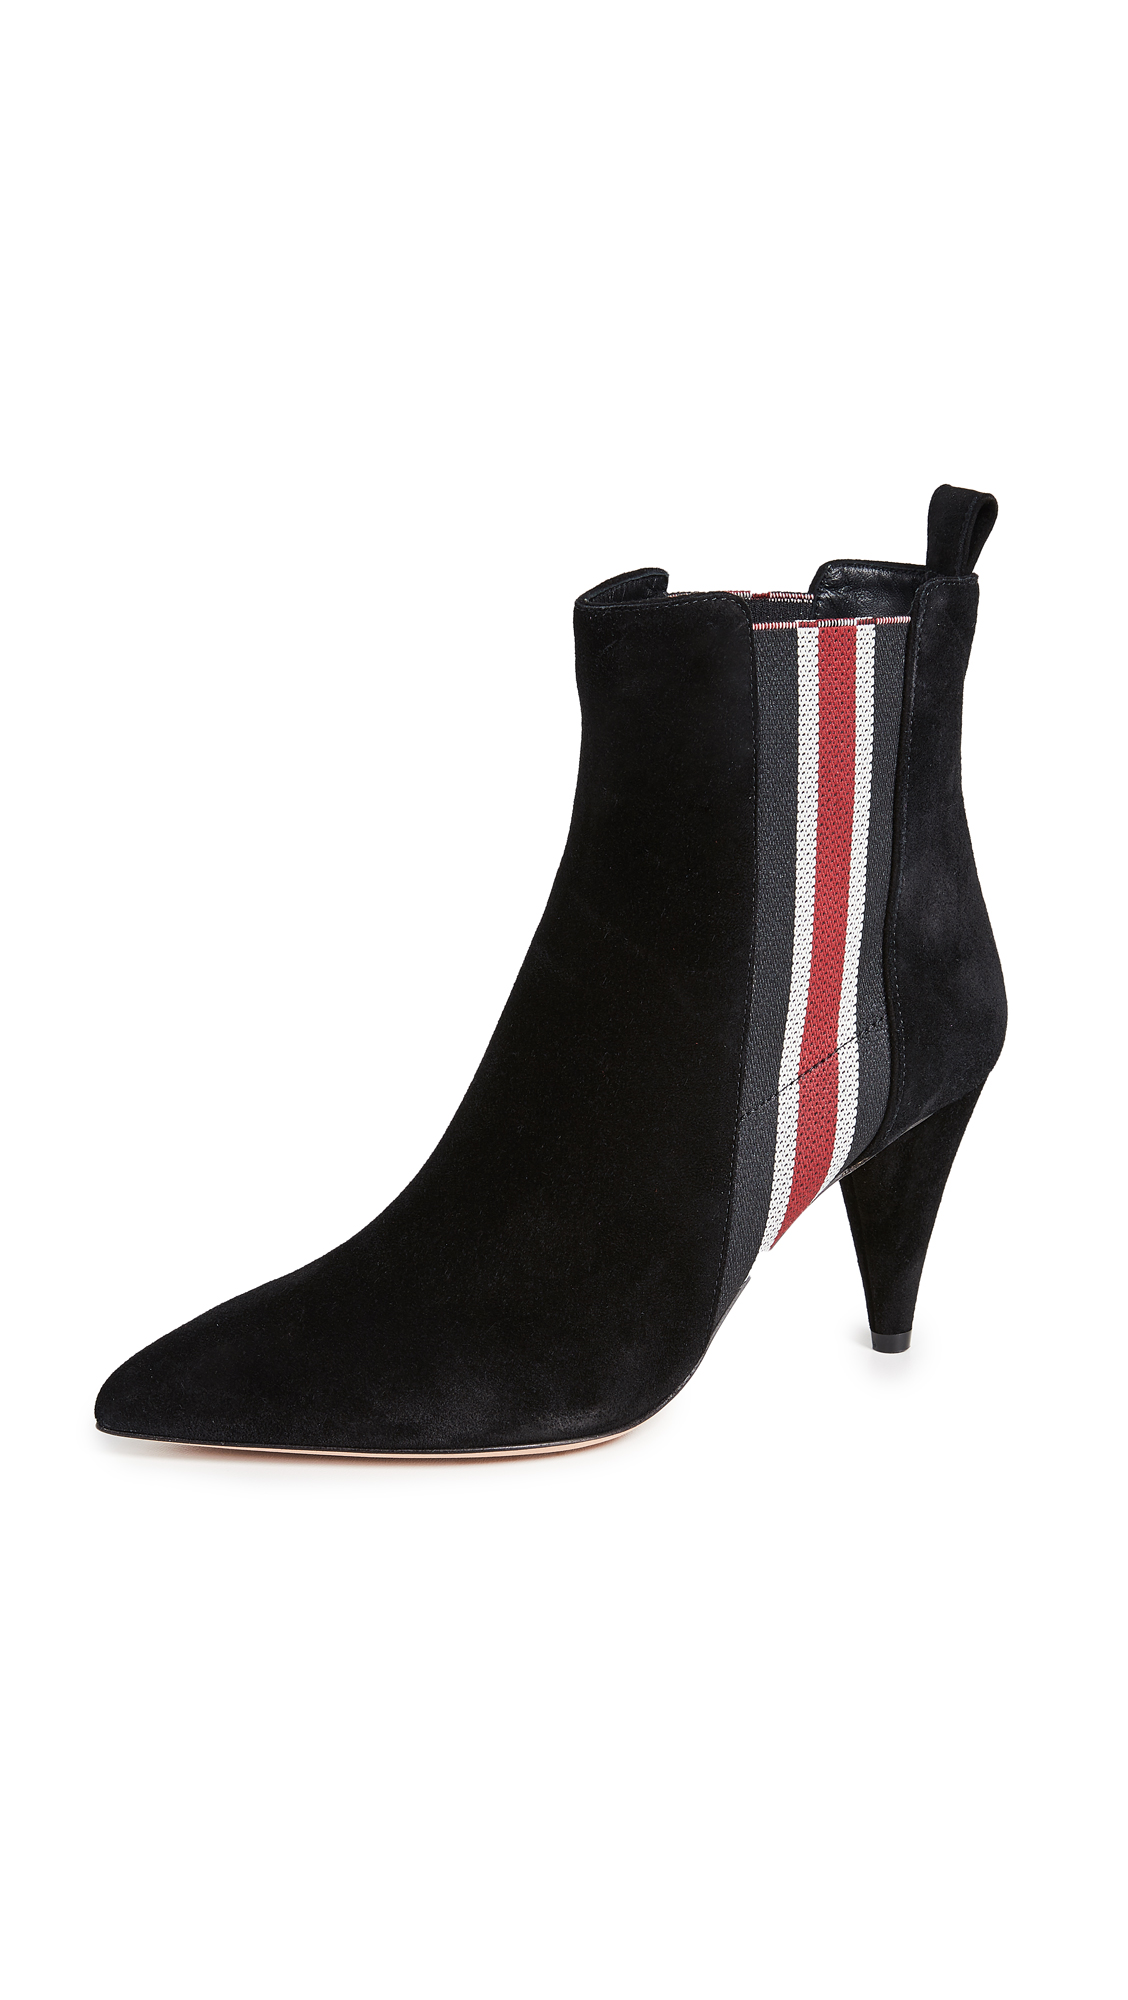 Veronica Beard Flynne Suede Booties - Black/Red